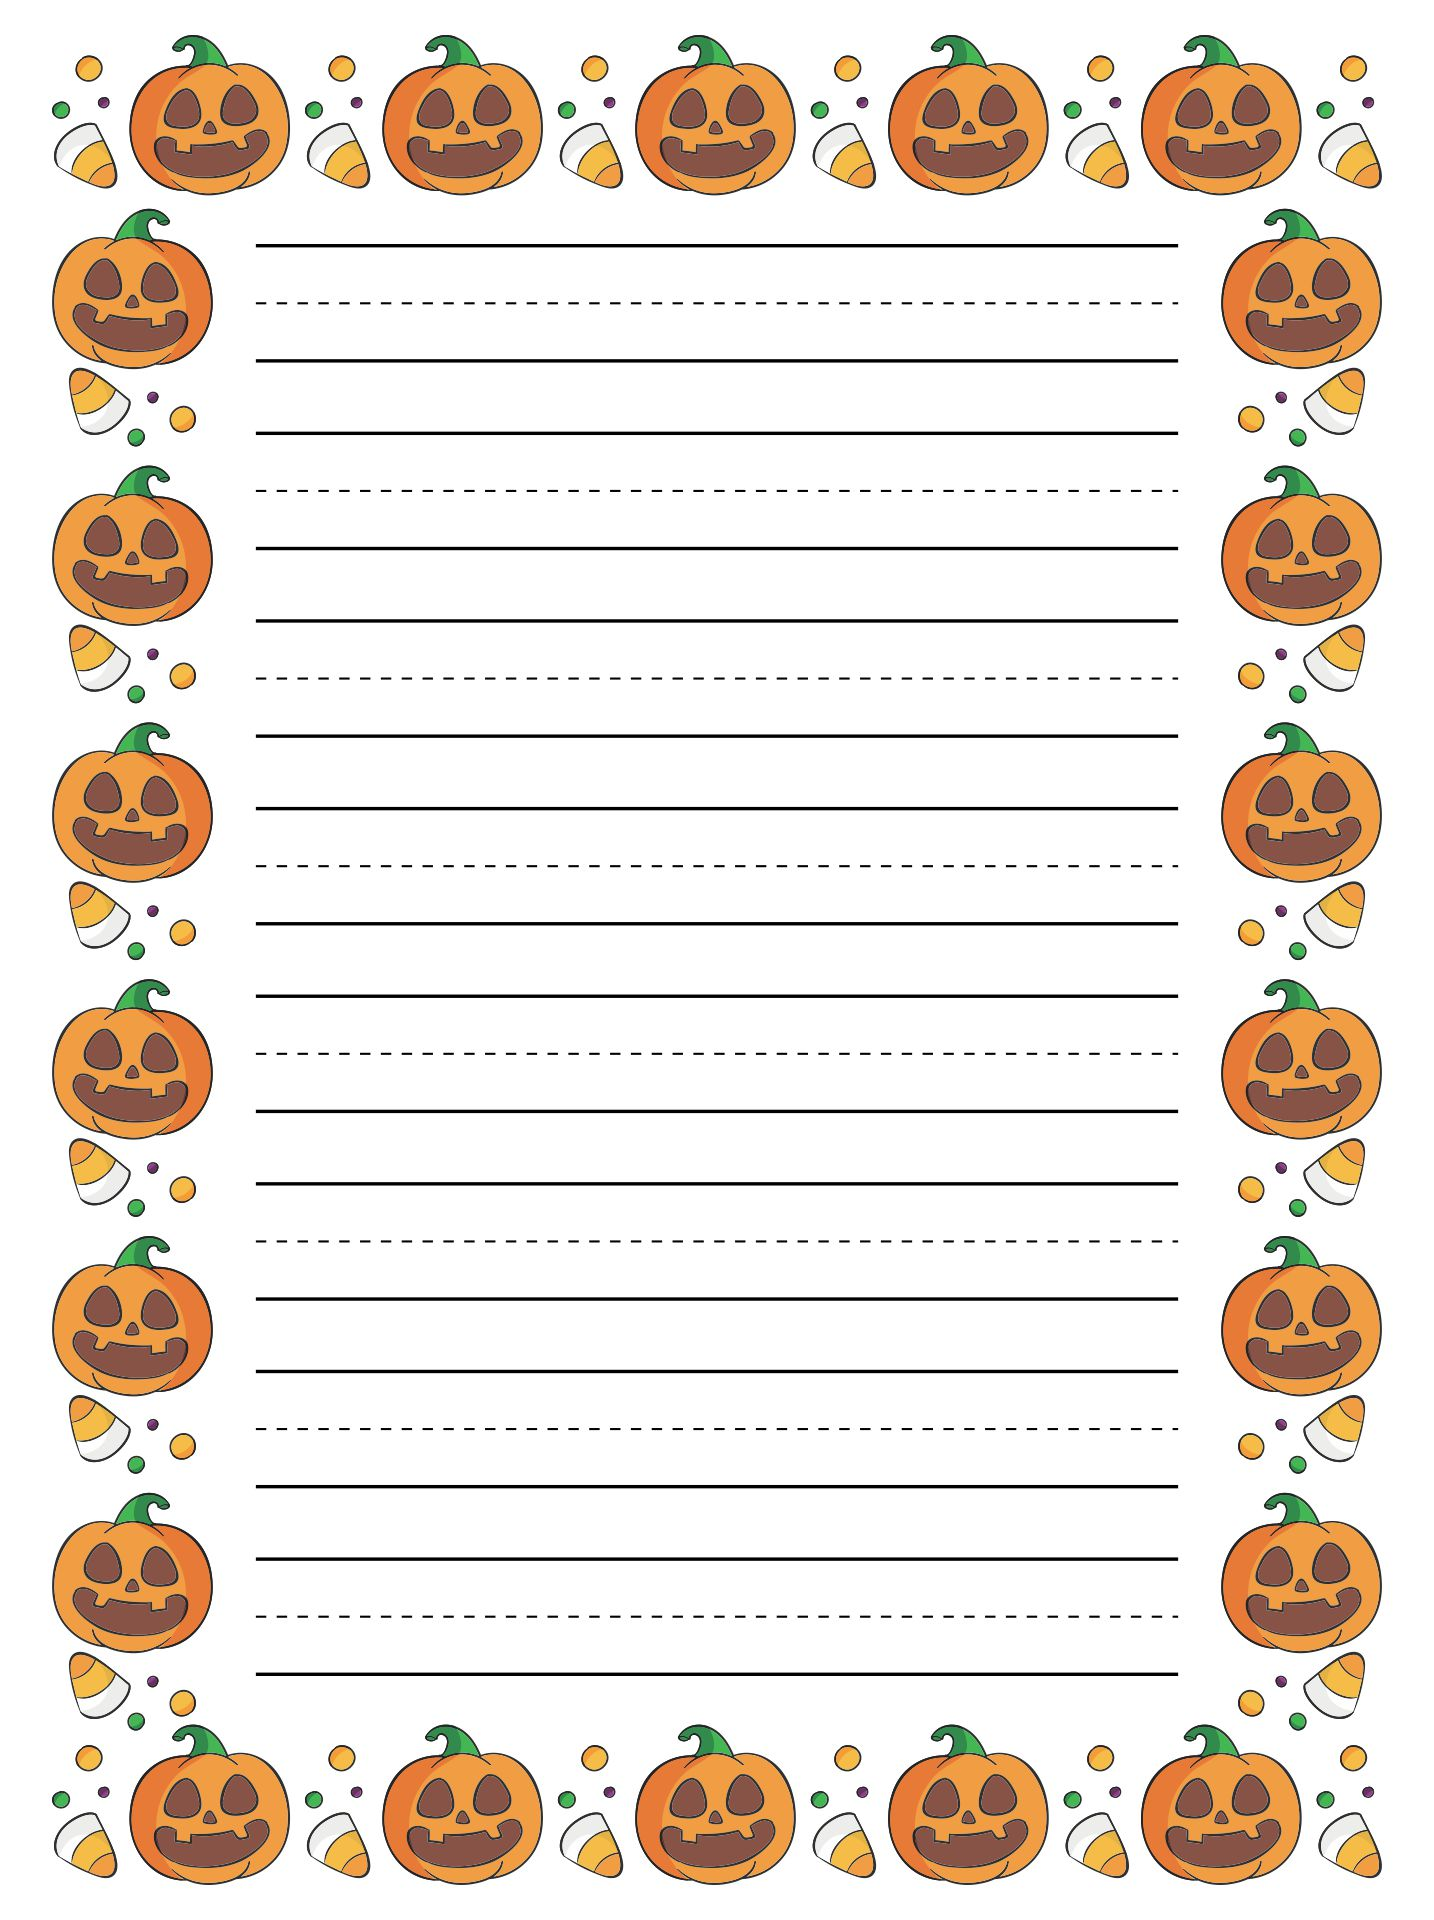 4 Images of Free Printable Halloween Letter Head